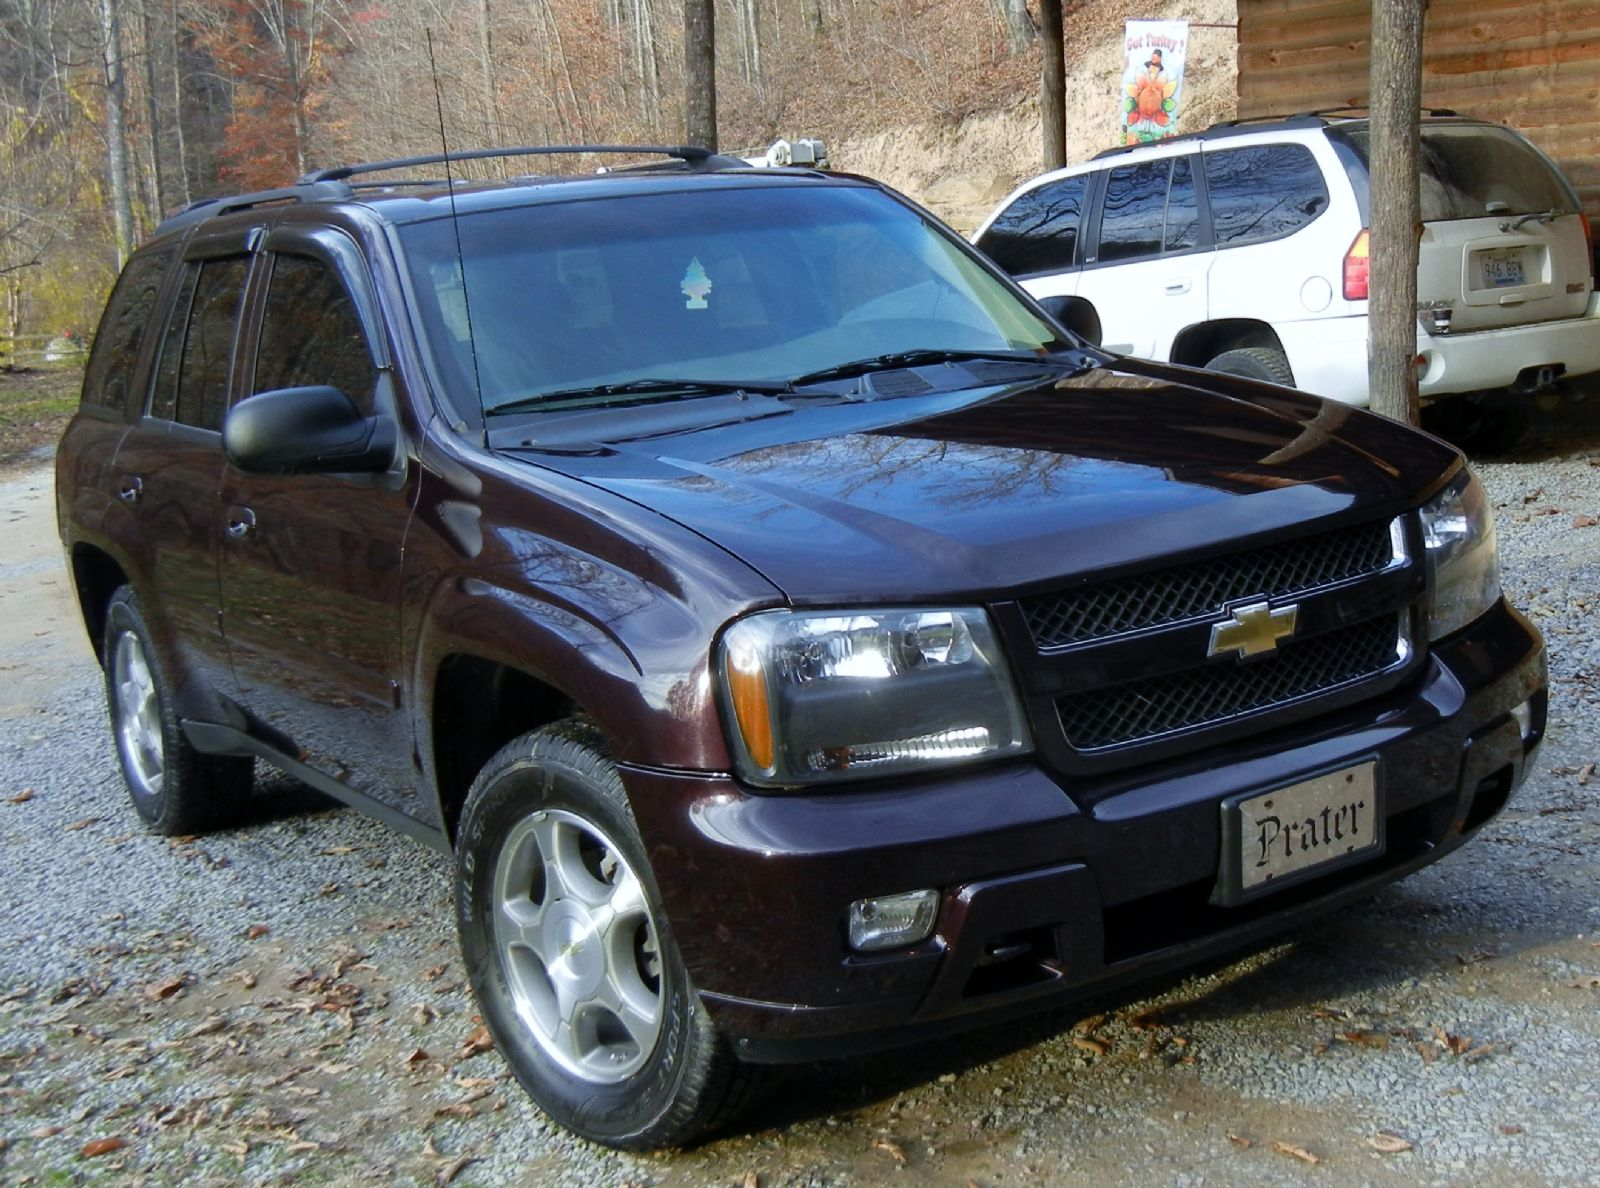 Chevrolet Trailblazer 2009 foto - 4